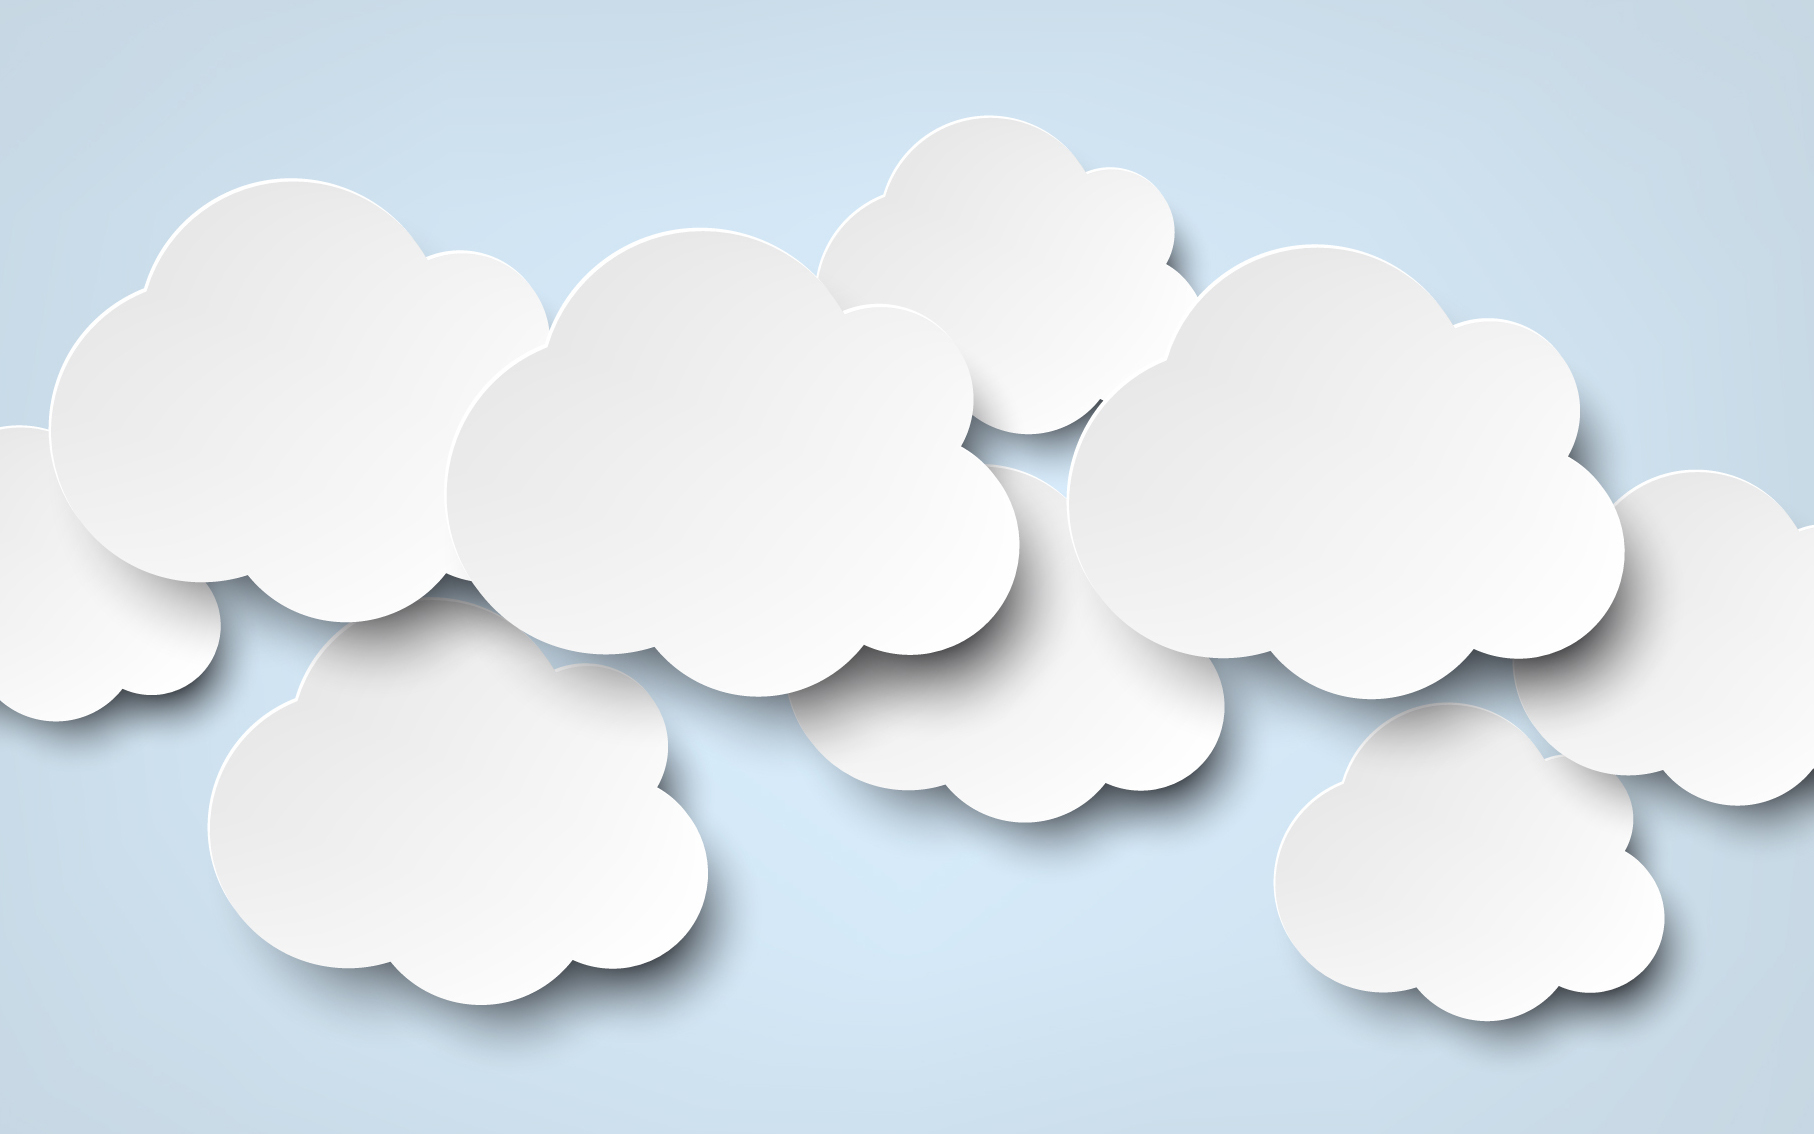 What to do When Thoughts Arise While Meditating - Paper clouds arranged together on a blue background